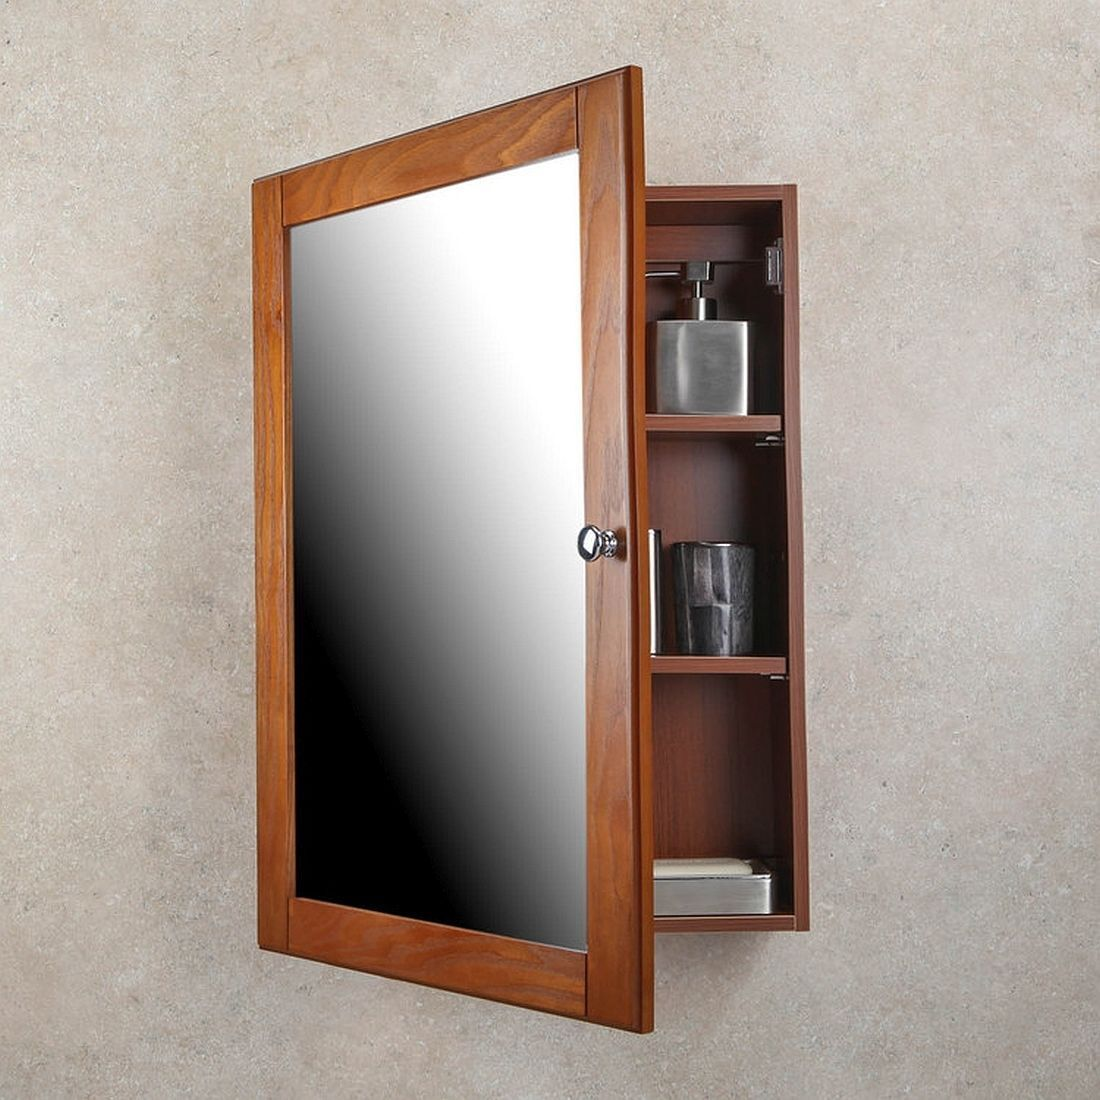 medicine cabinet oak finish single framed mirror door surface mounted